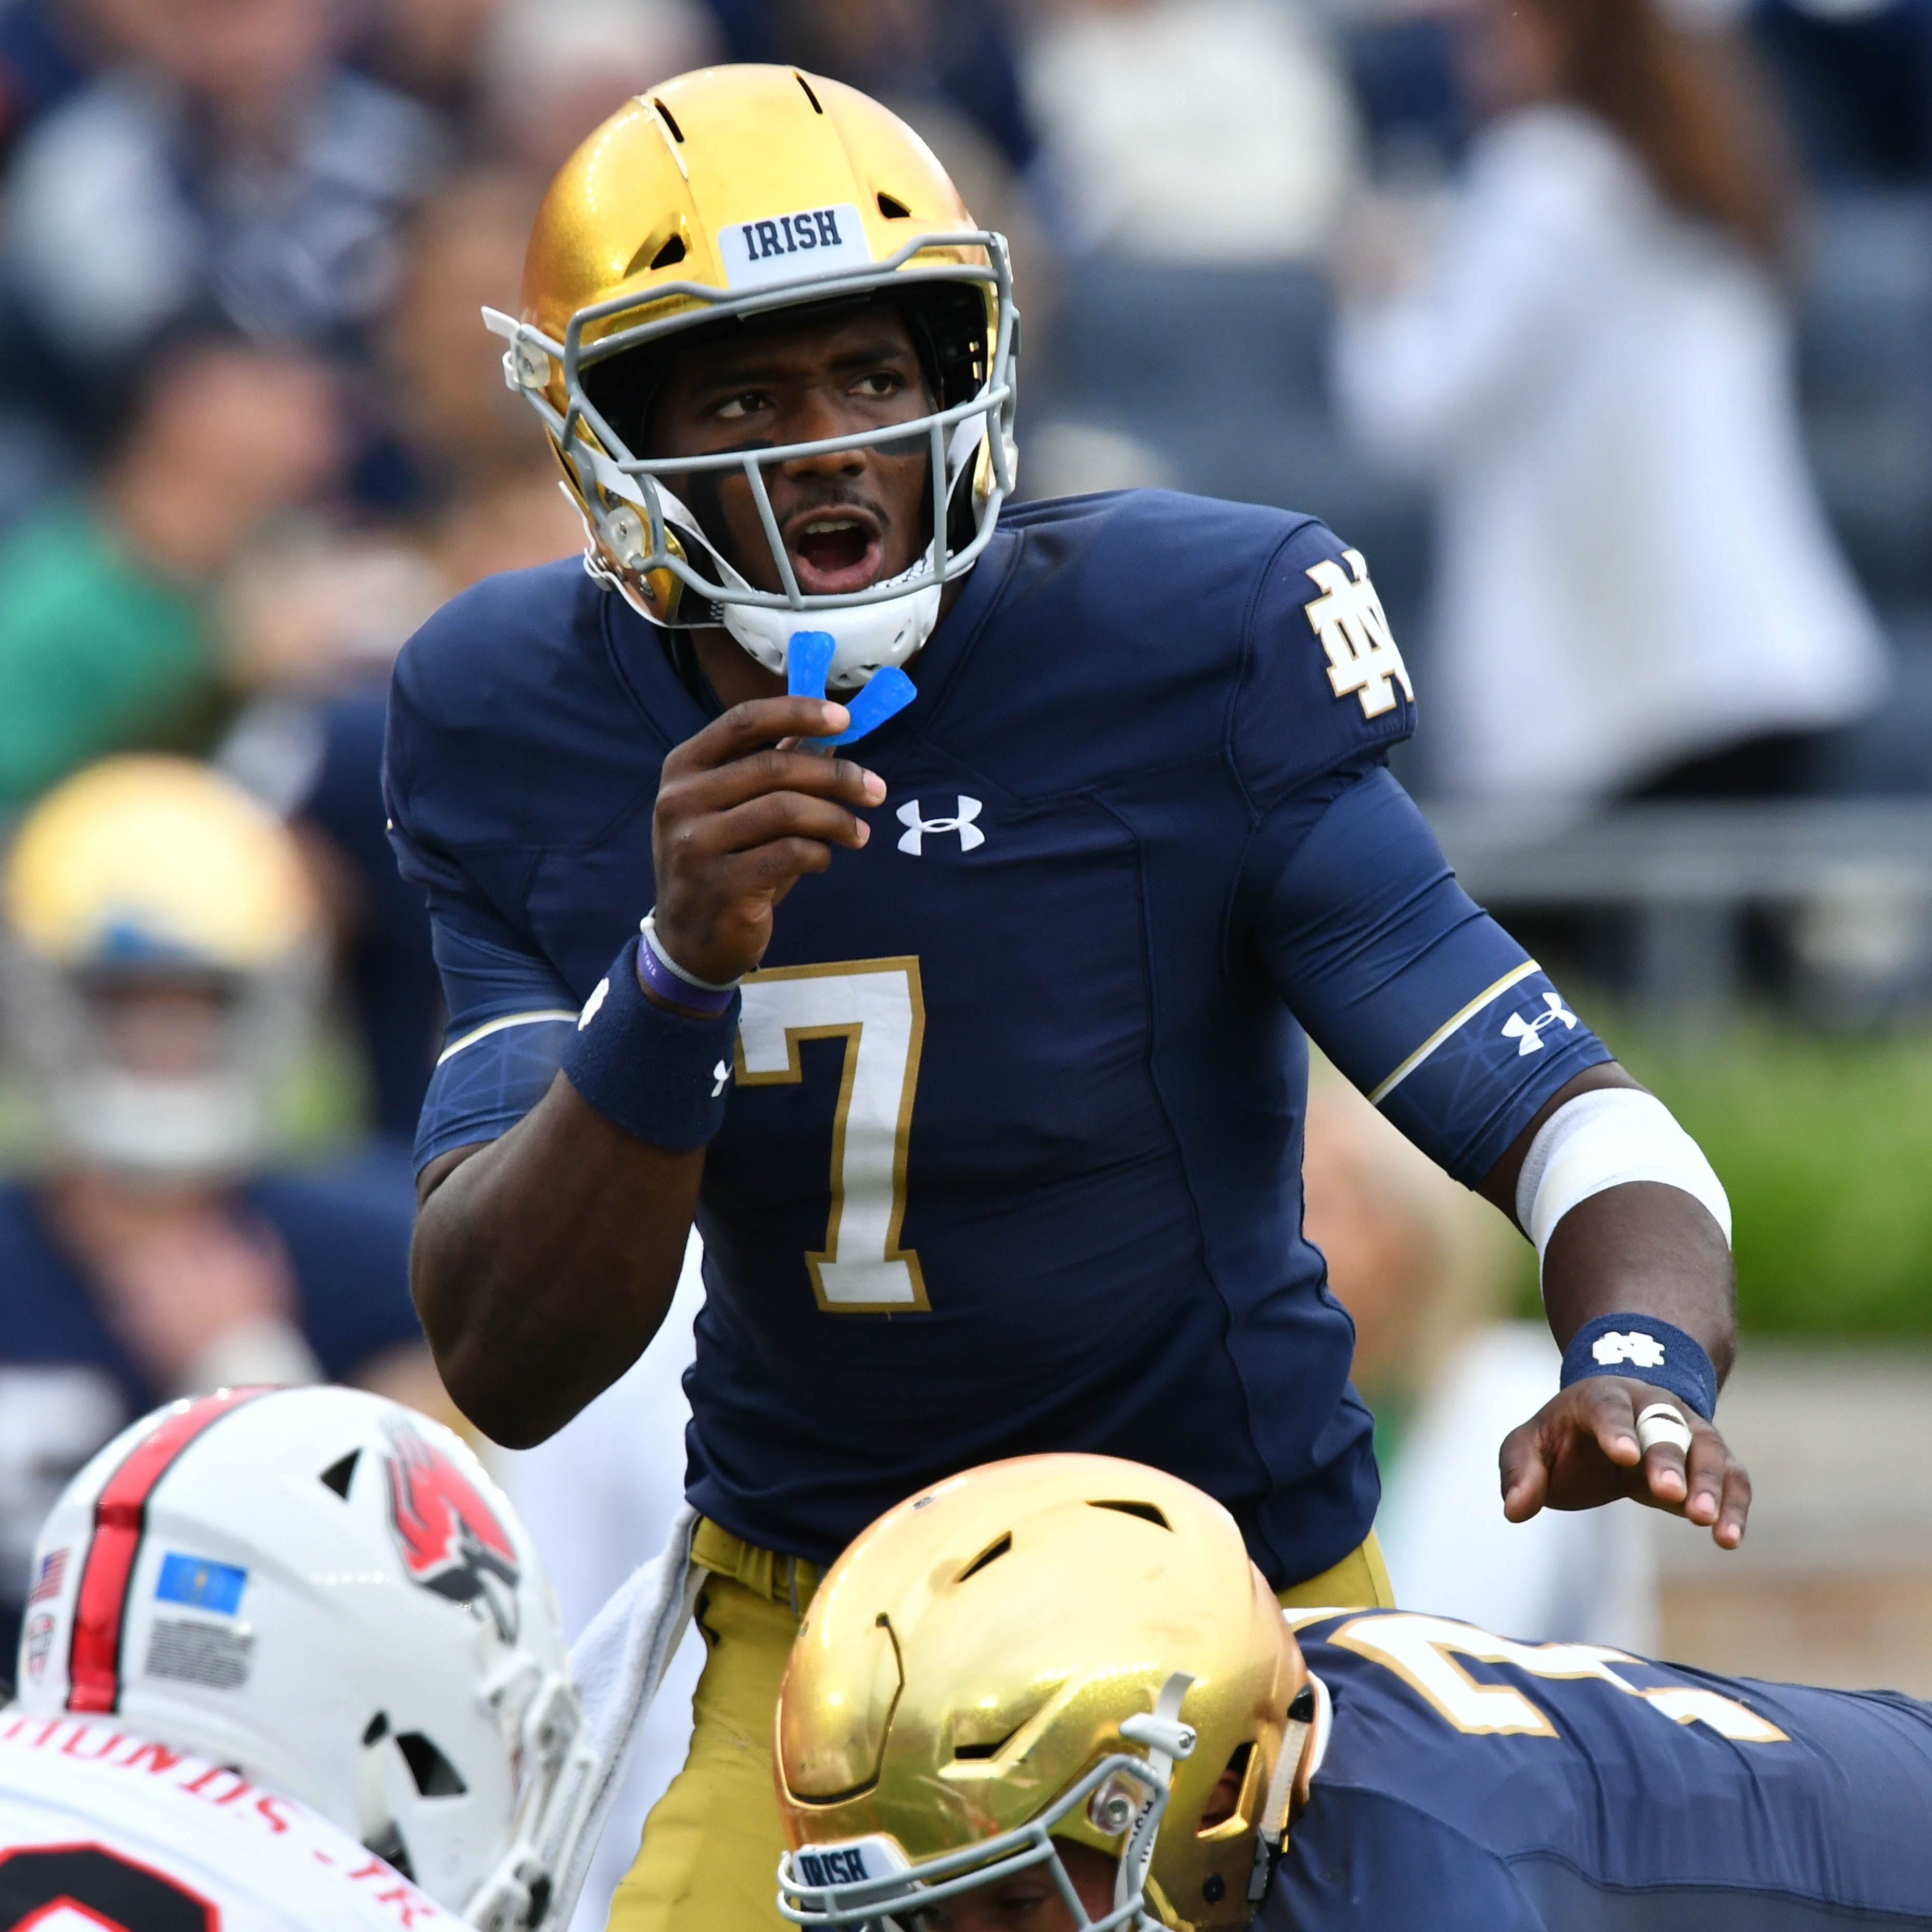 Brandon Wimbush transfers from Notre Dame to University of Central Florida